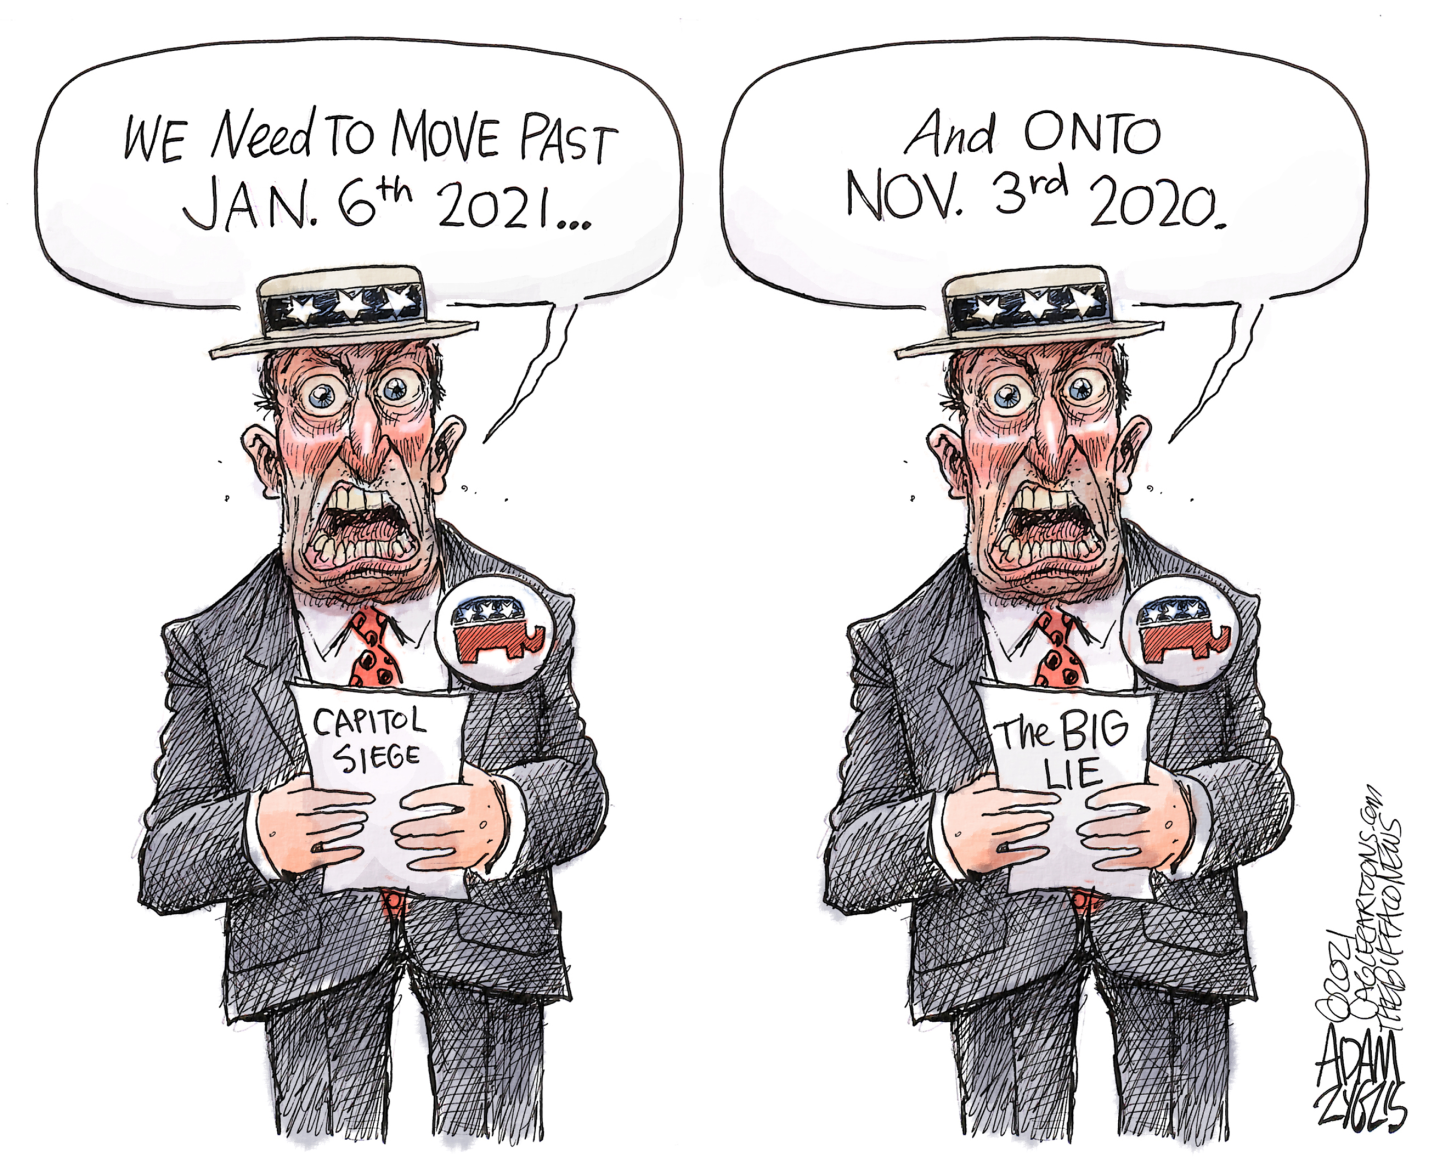 Republicans deny capitol seige on Jan 6th but stick to the Big Lie